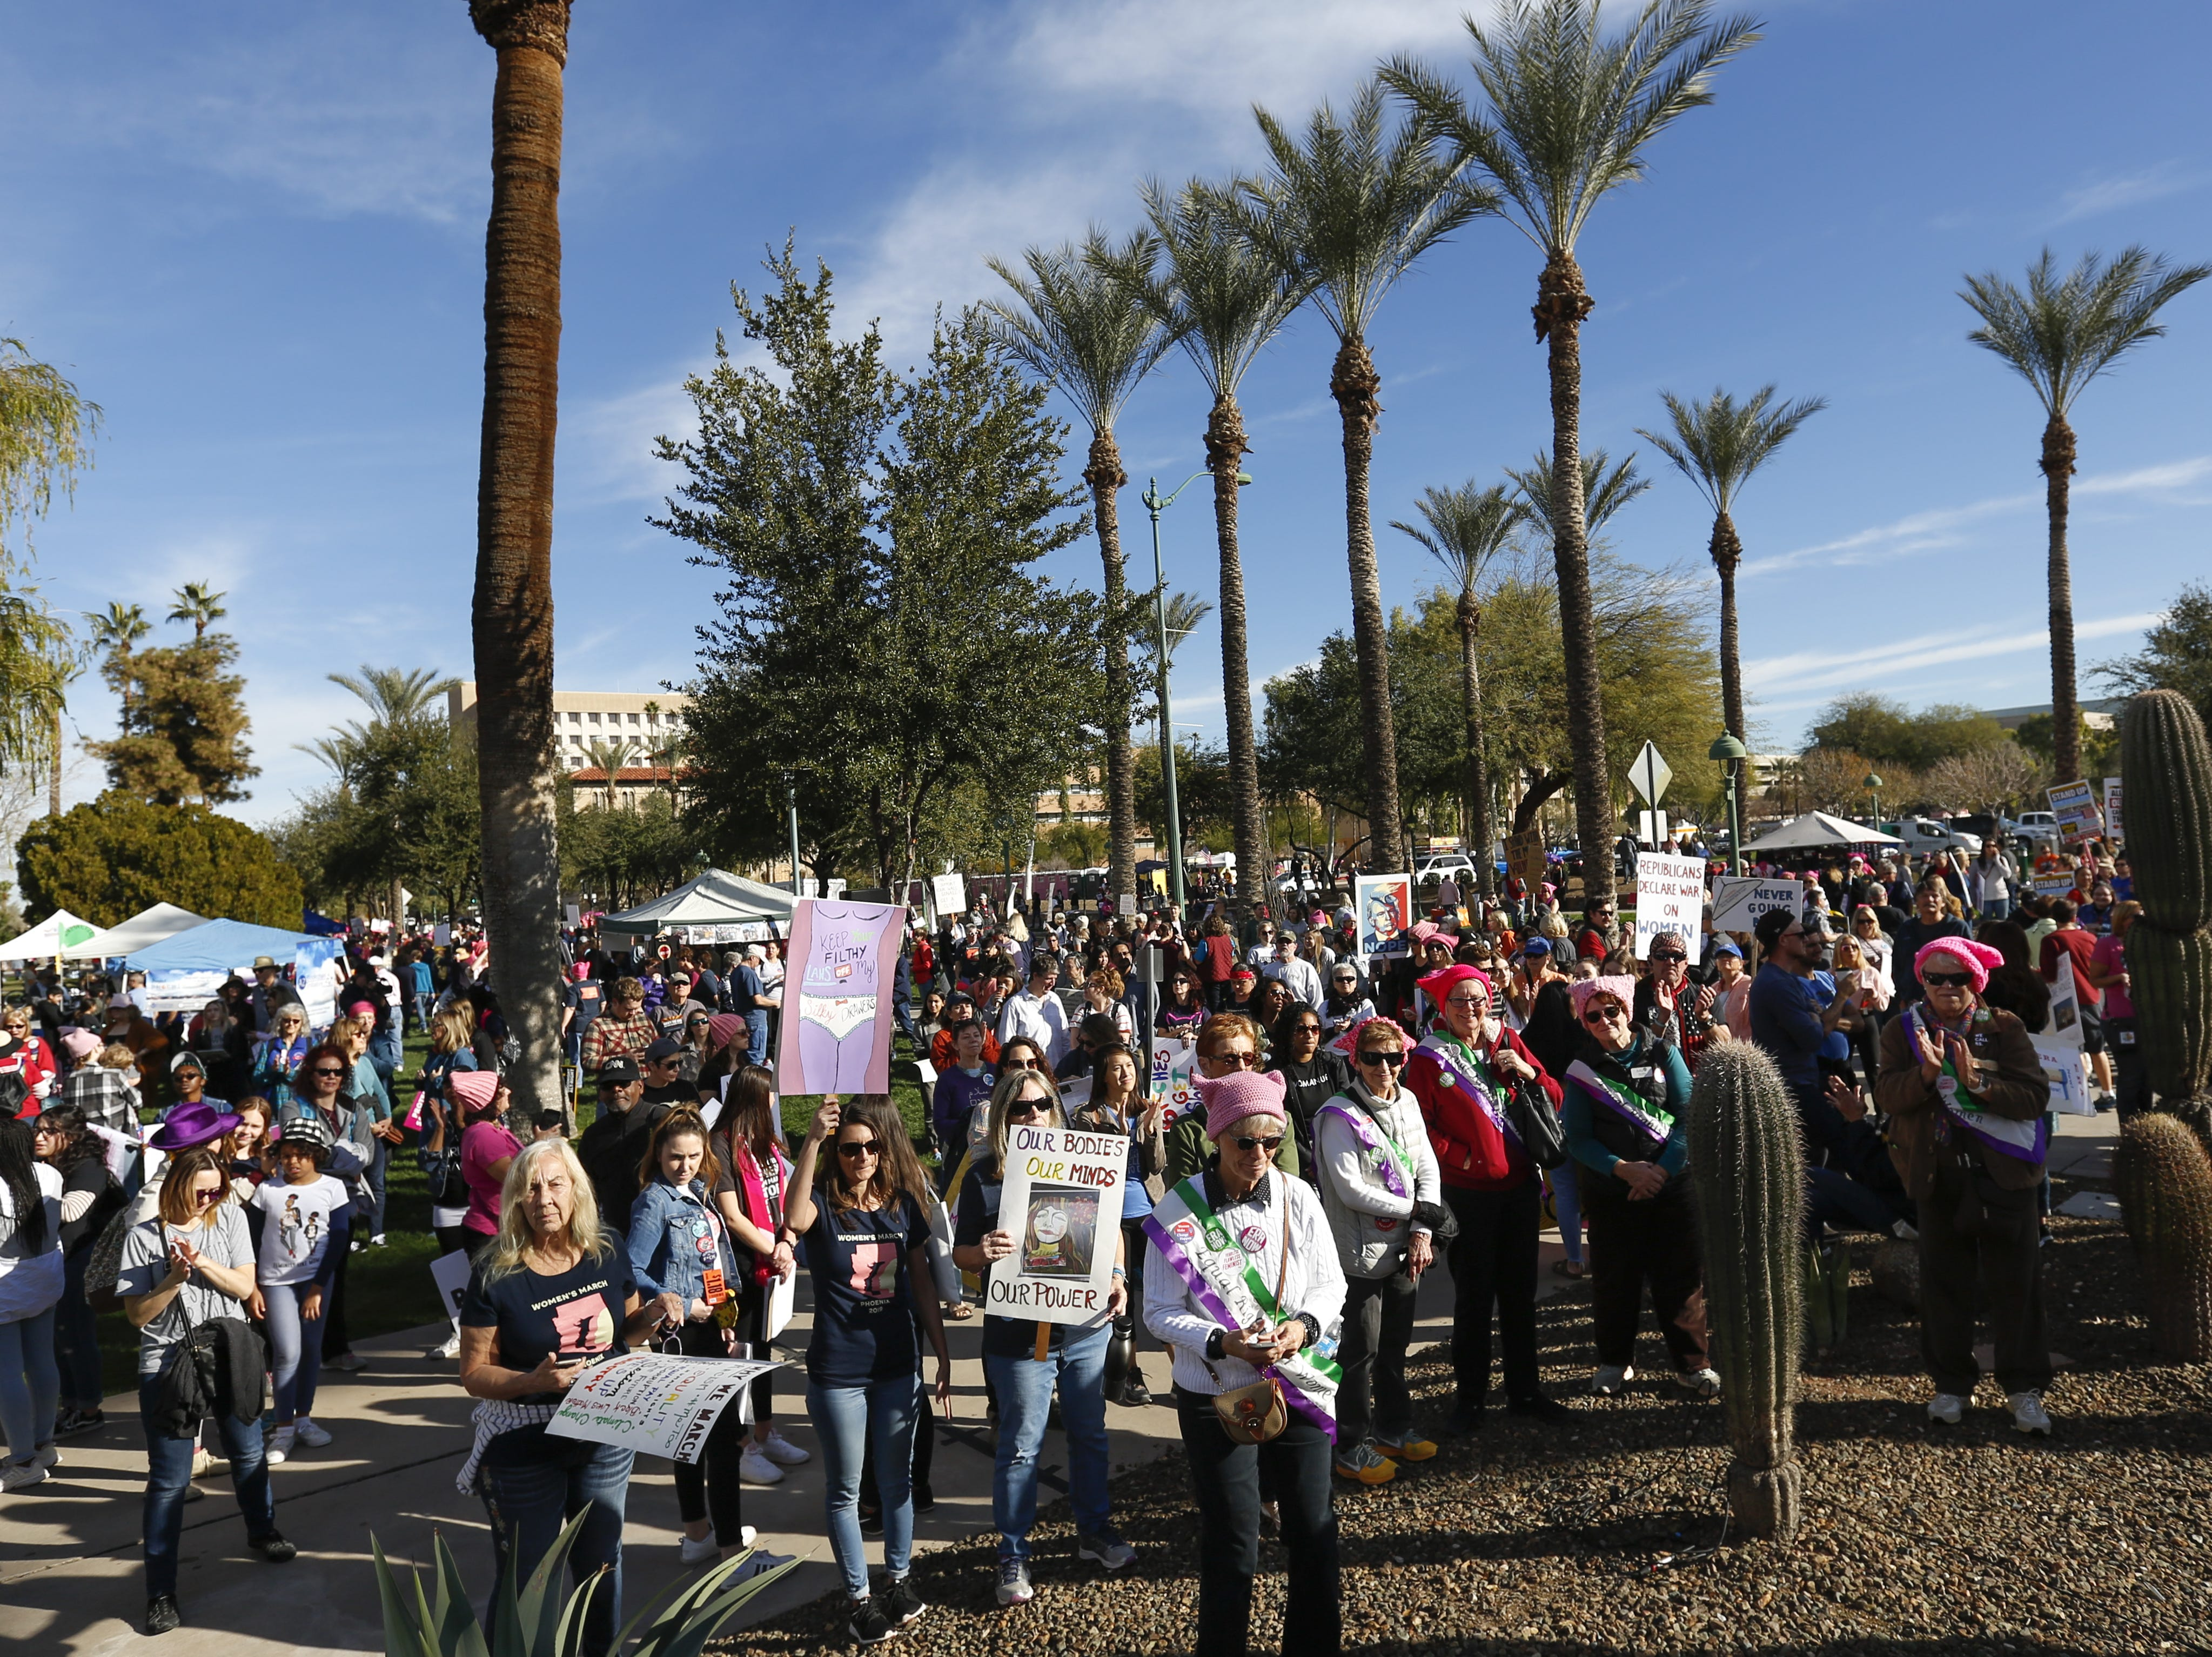 The crowd stretches across the lawn at the Phoenix Women's March on Jan. 19, 2019, at the Arizona Capitol.